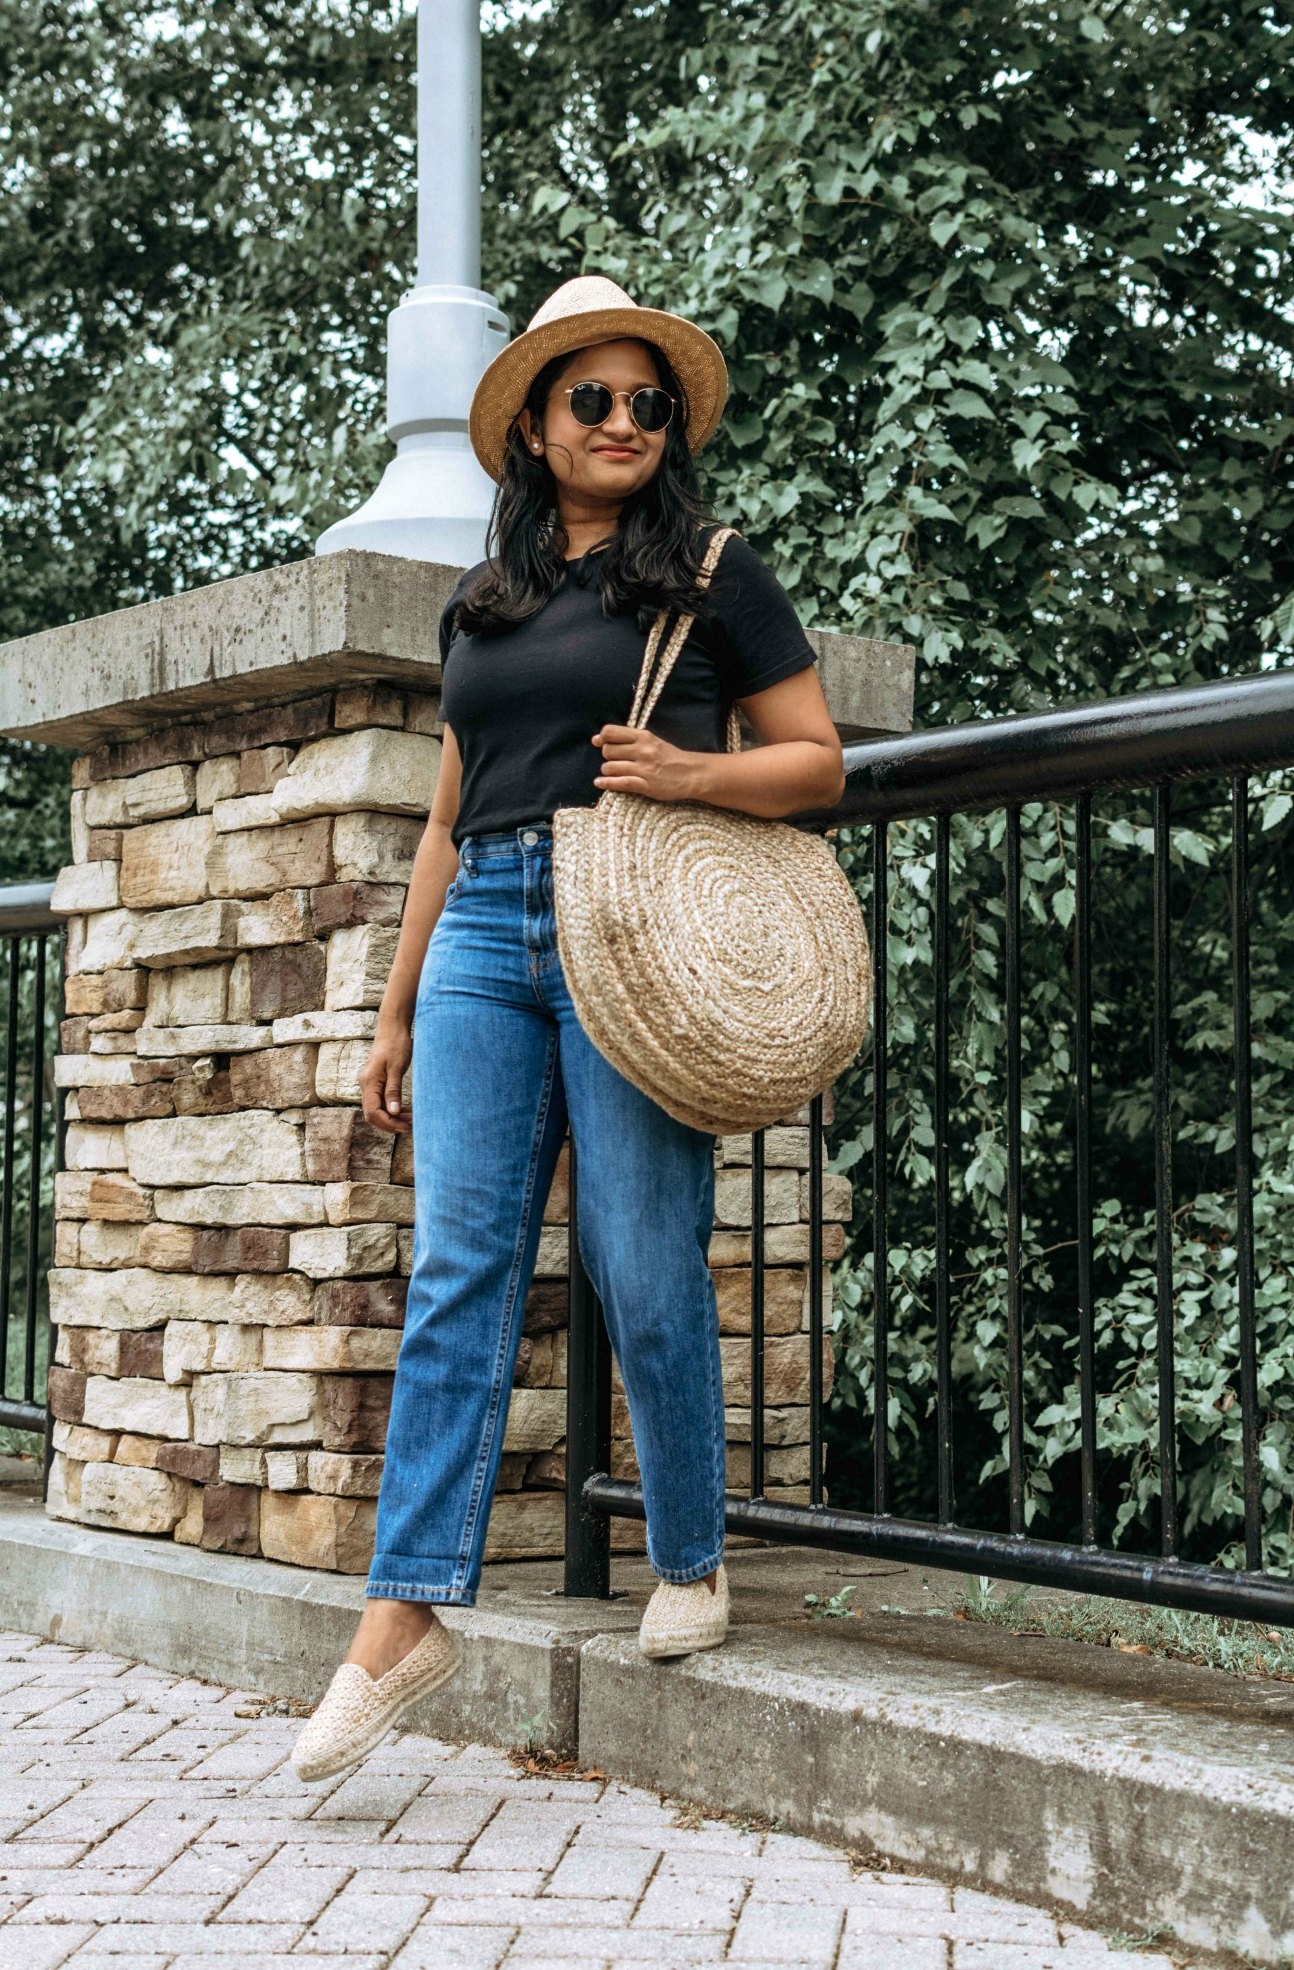 Wearing Everlane summer jeans, Cotton Box-Cut Tee, Manebí Yucatan Raffia Espadrilles, Straw circle bag and straw hat